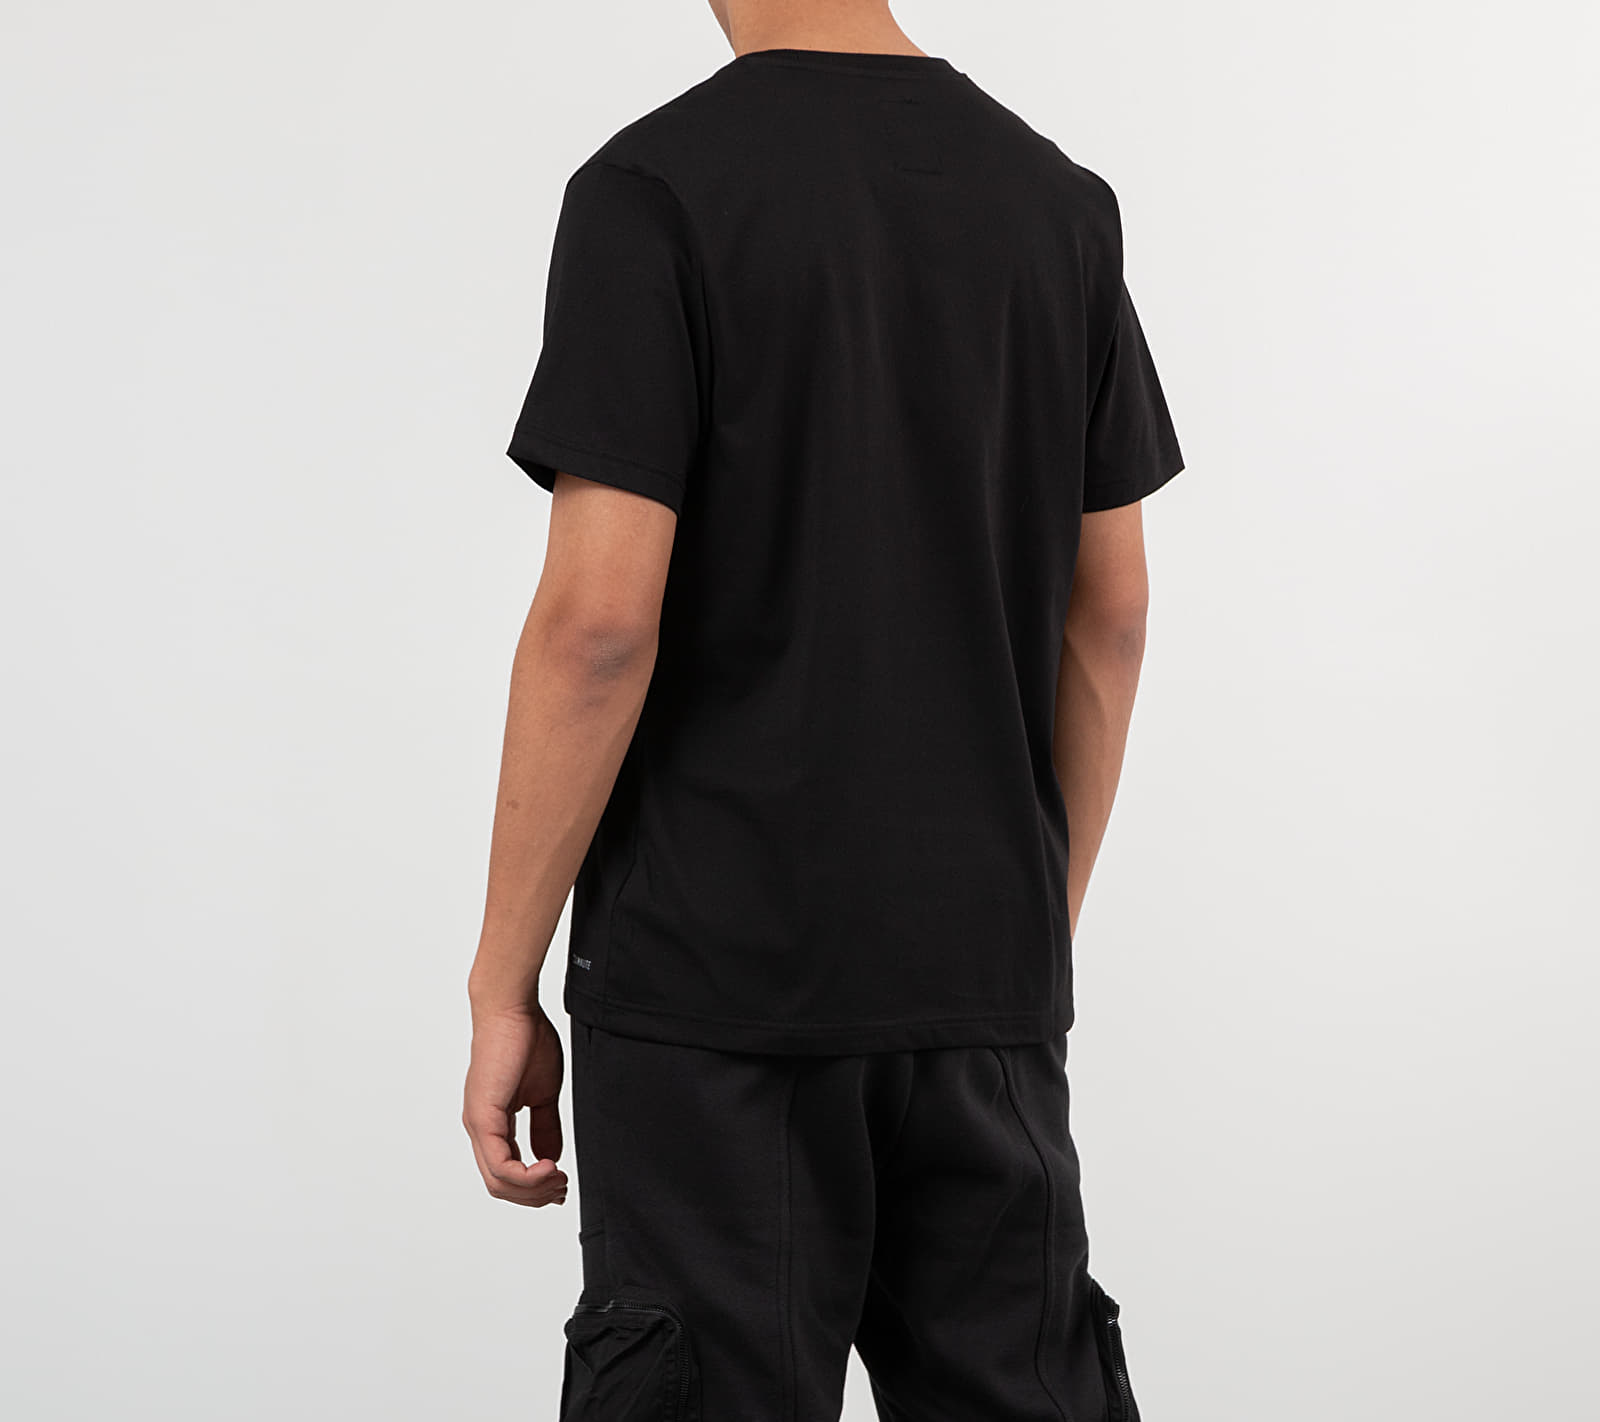 adidas x Neighborhood Logo Tee Black